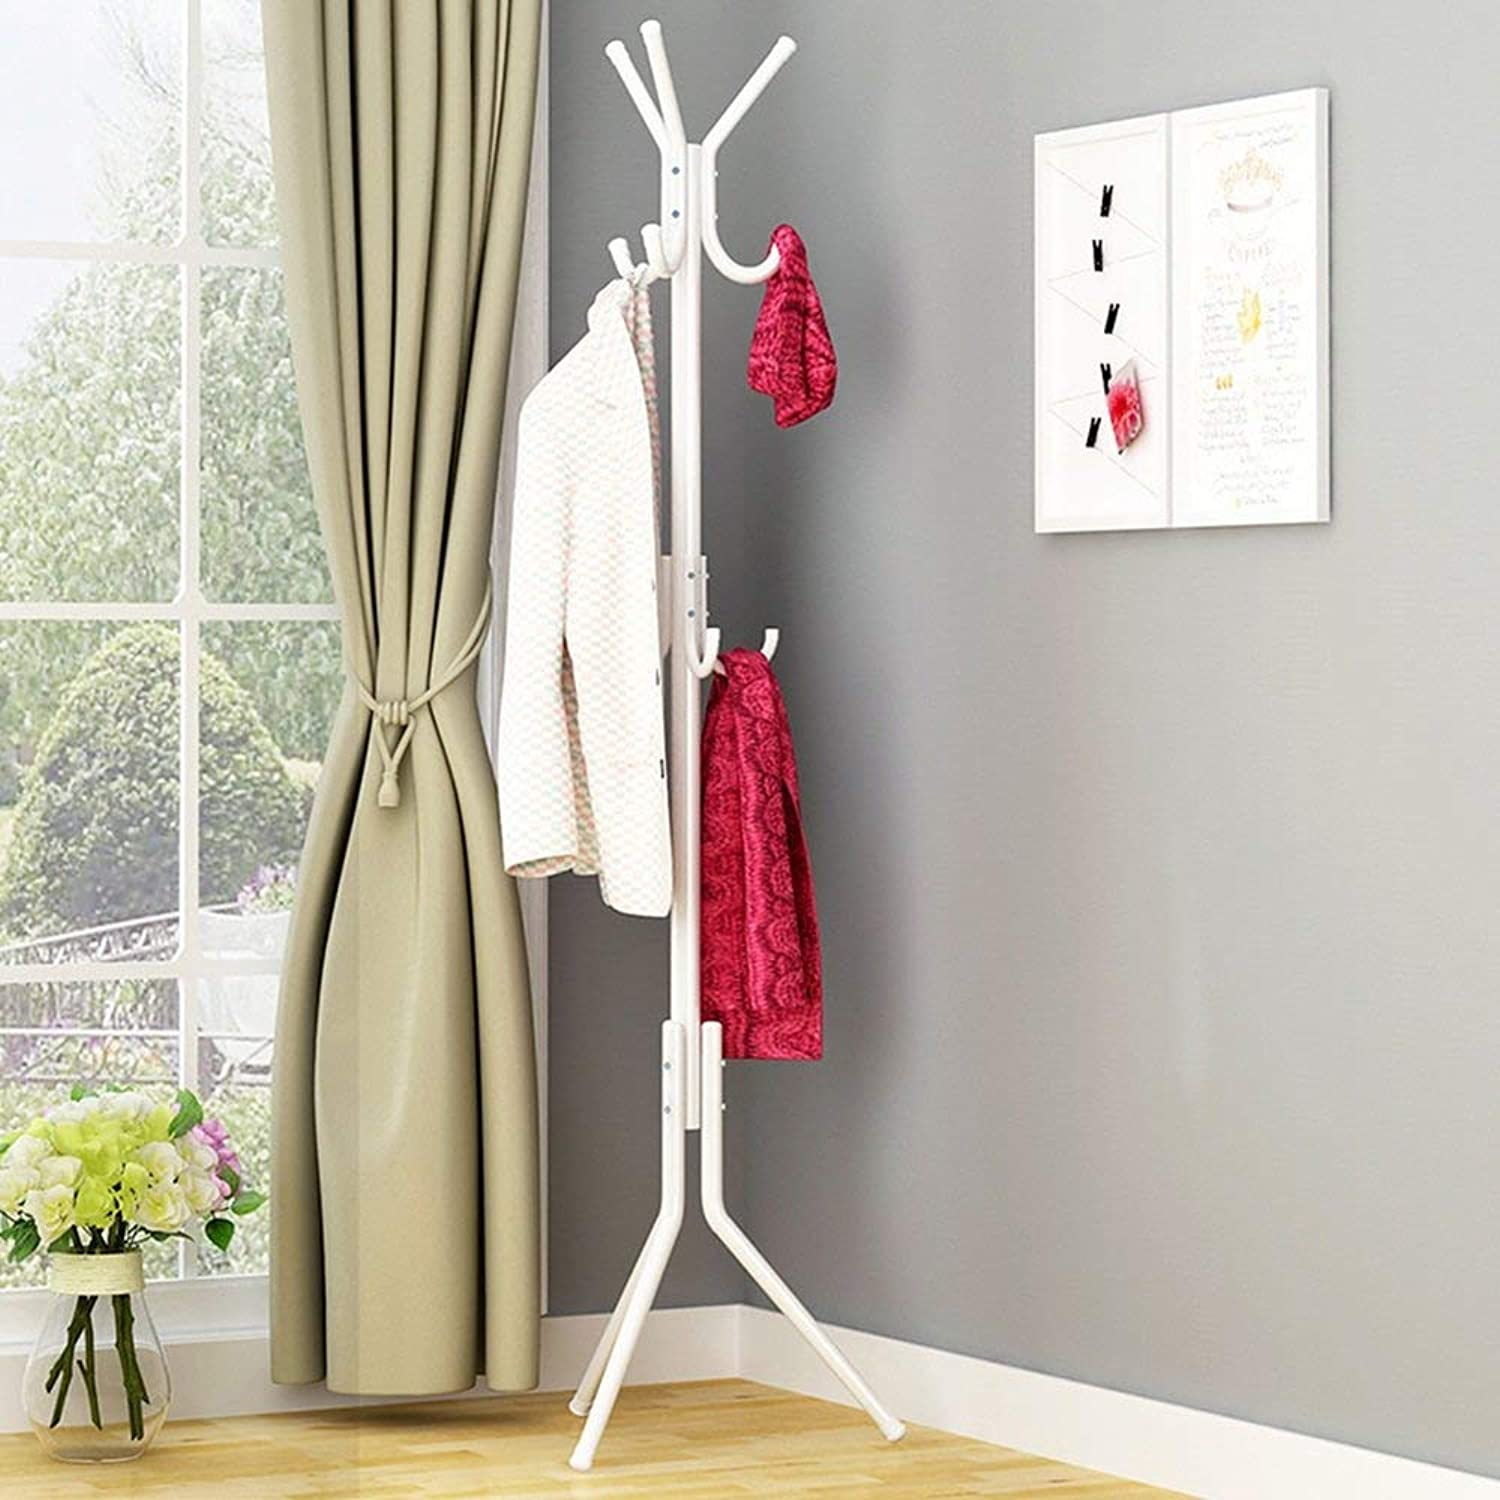 DYR 9 Metal Hooks hat Hanger Clothes Stand Clothes Hanger Standing Bag Standing Rack for Bathroom Living Room (color  White)